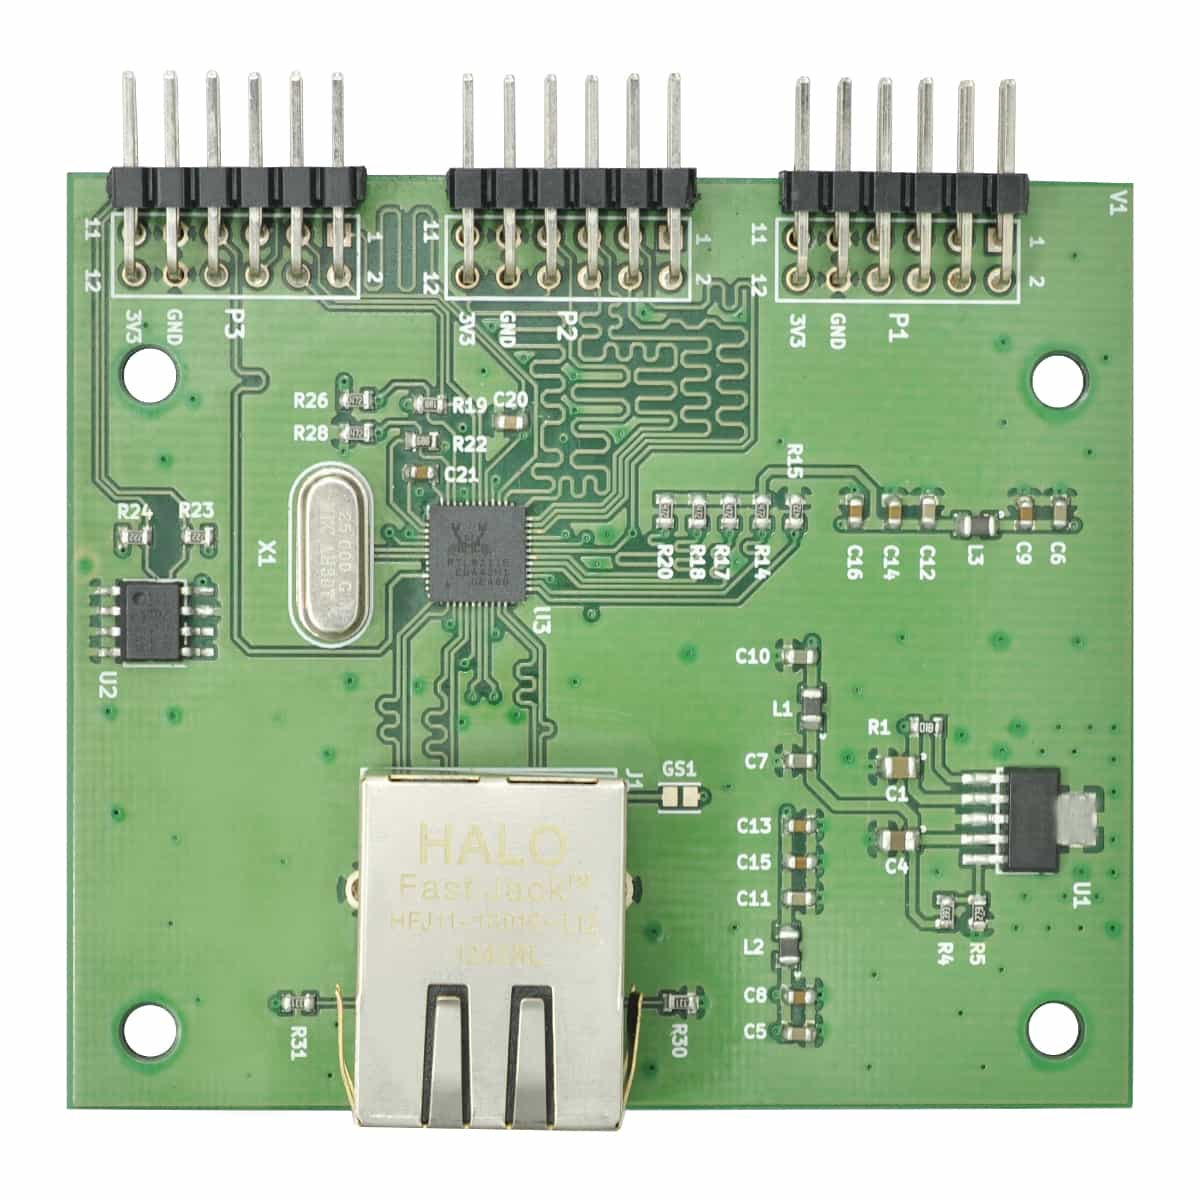 Rtl8211e Gigabit Ethernet Expansion Module Numato Lab